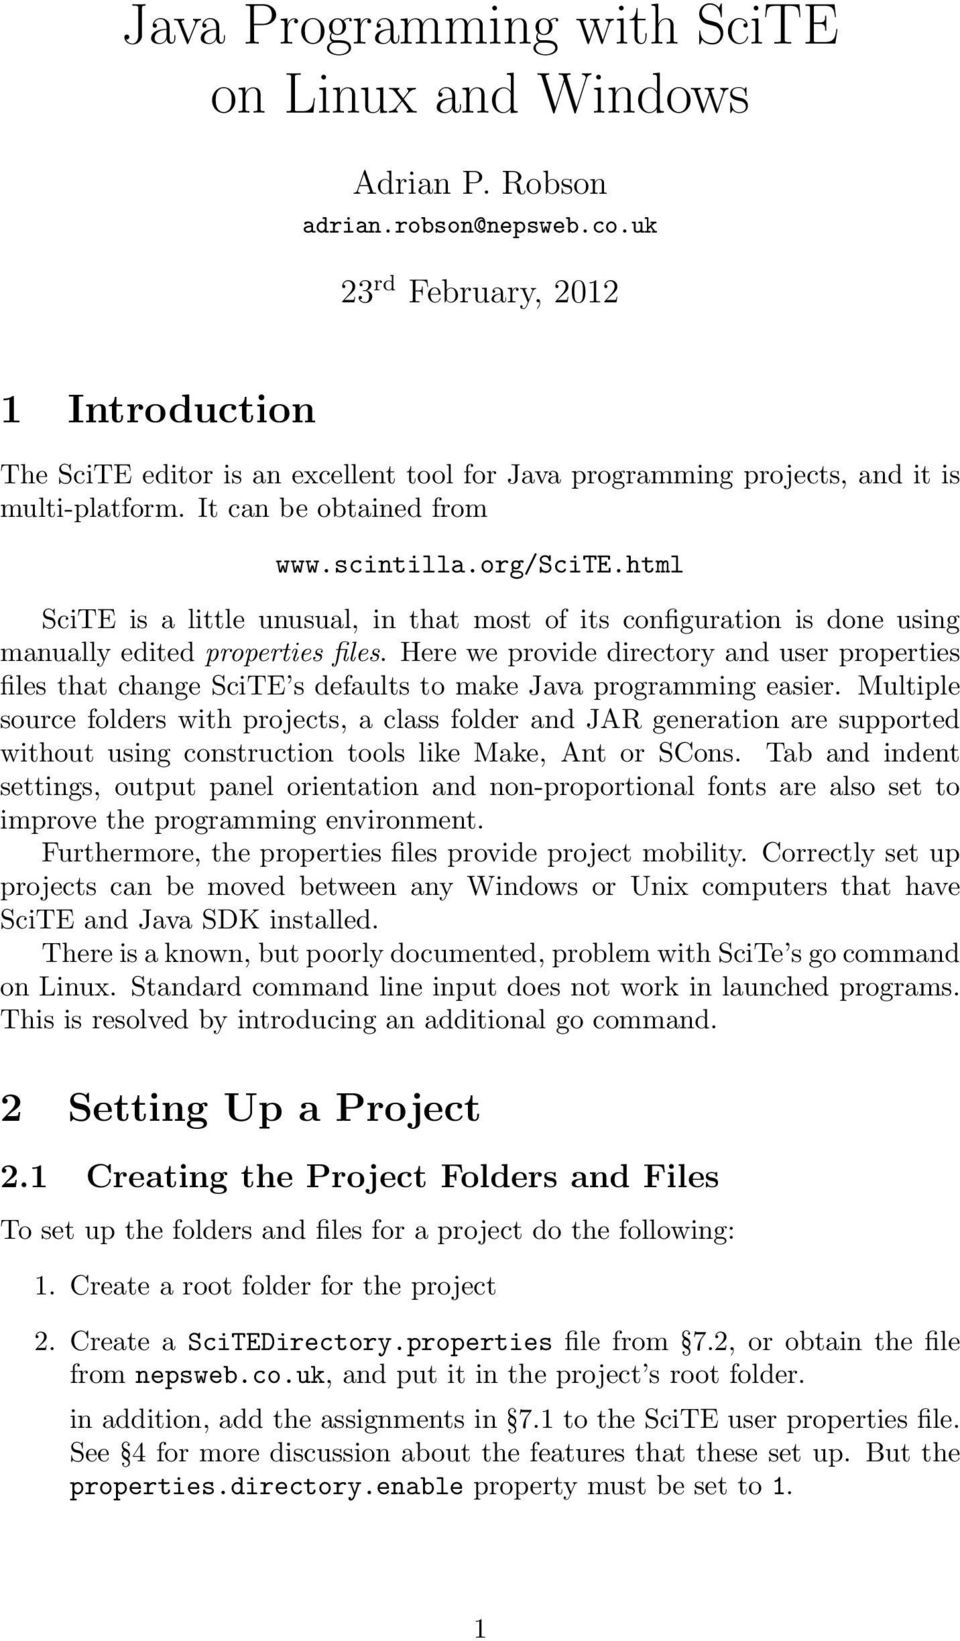 Java Programming with SciTE on Linux and Windows - PDF